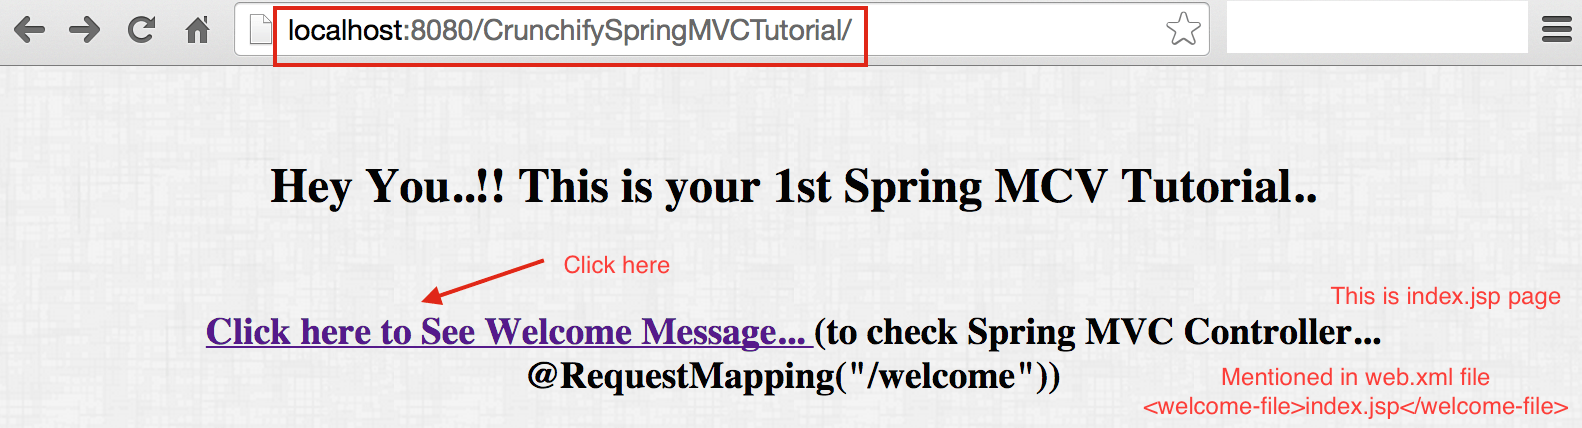 CrunchifySpringMVCTutorial index.jsp page